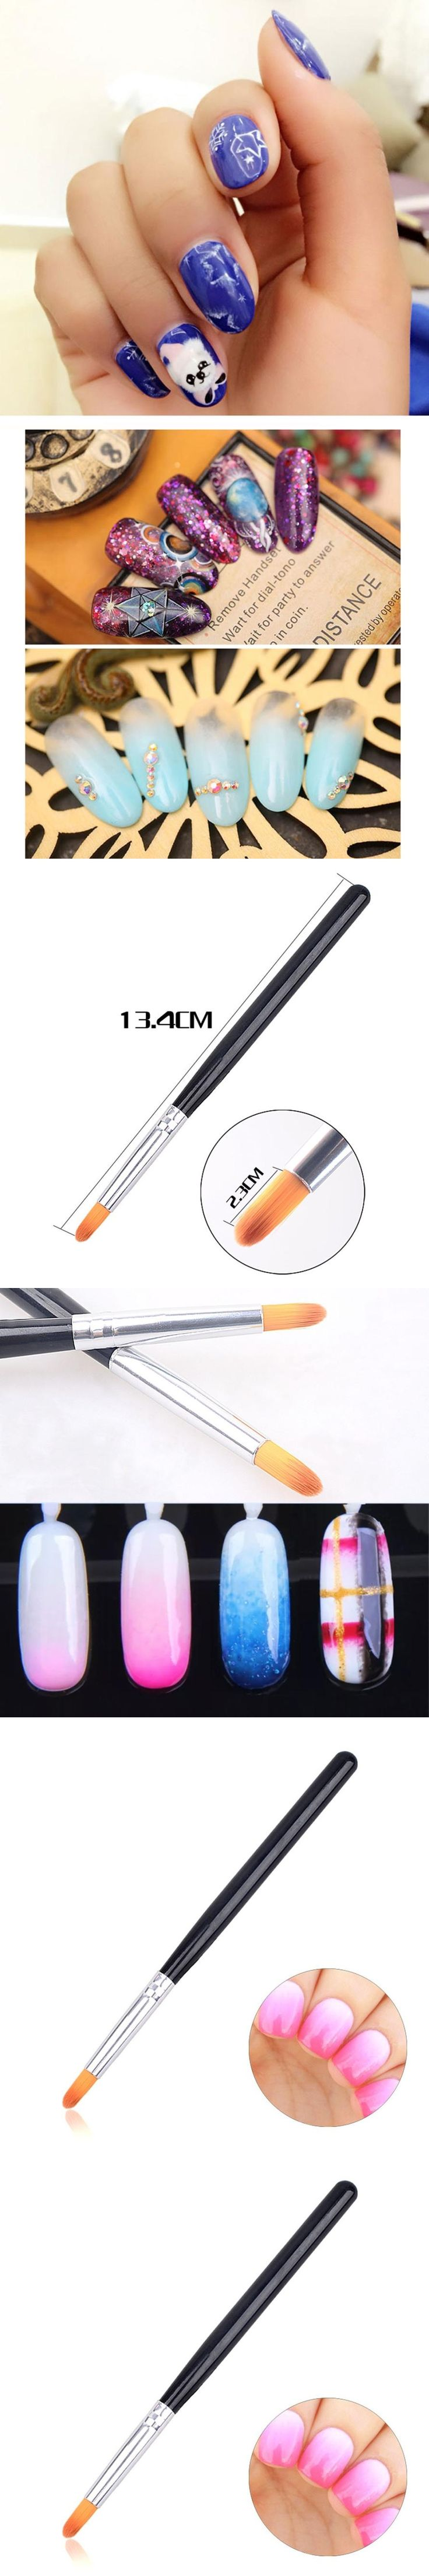 TSW Handle UV Gel Nail Art Tip Care Pen Brush Manicure Tool 0411A5Down